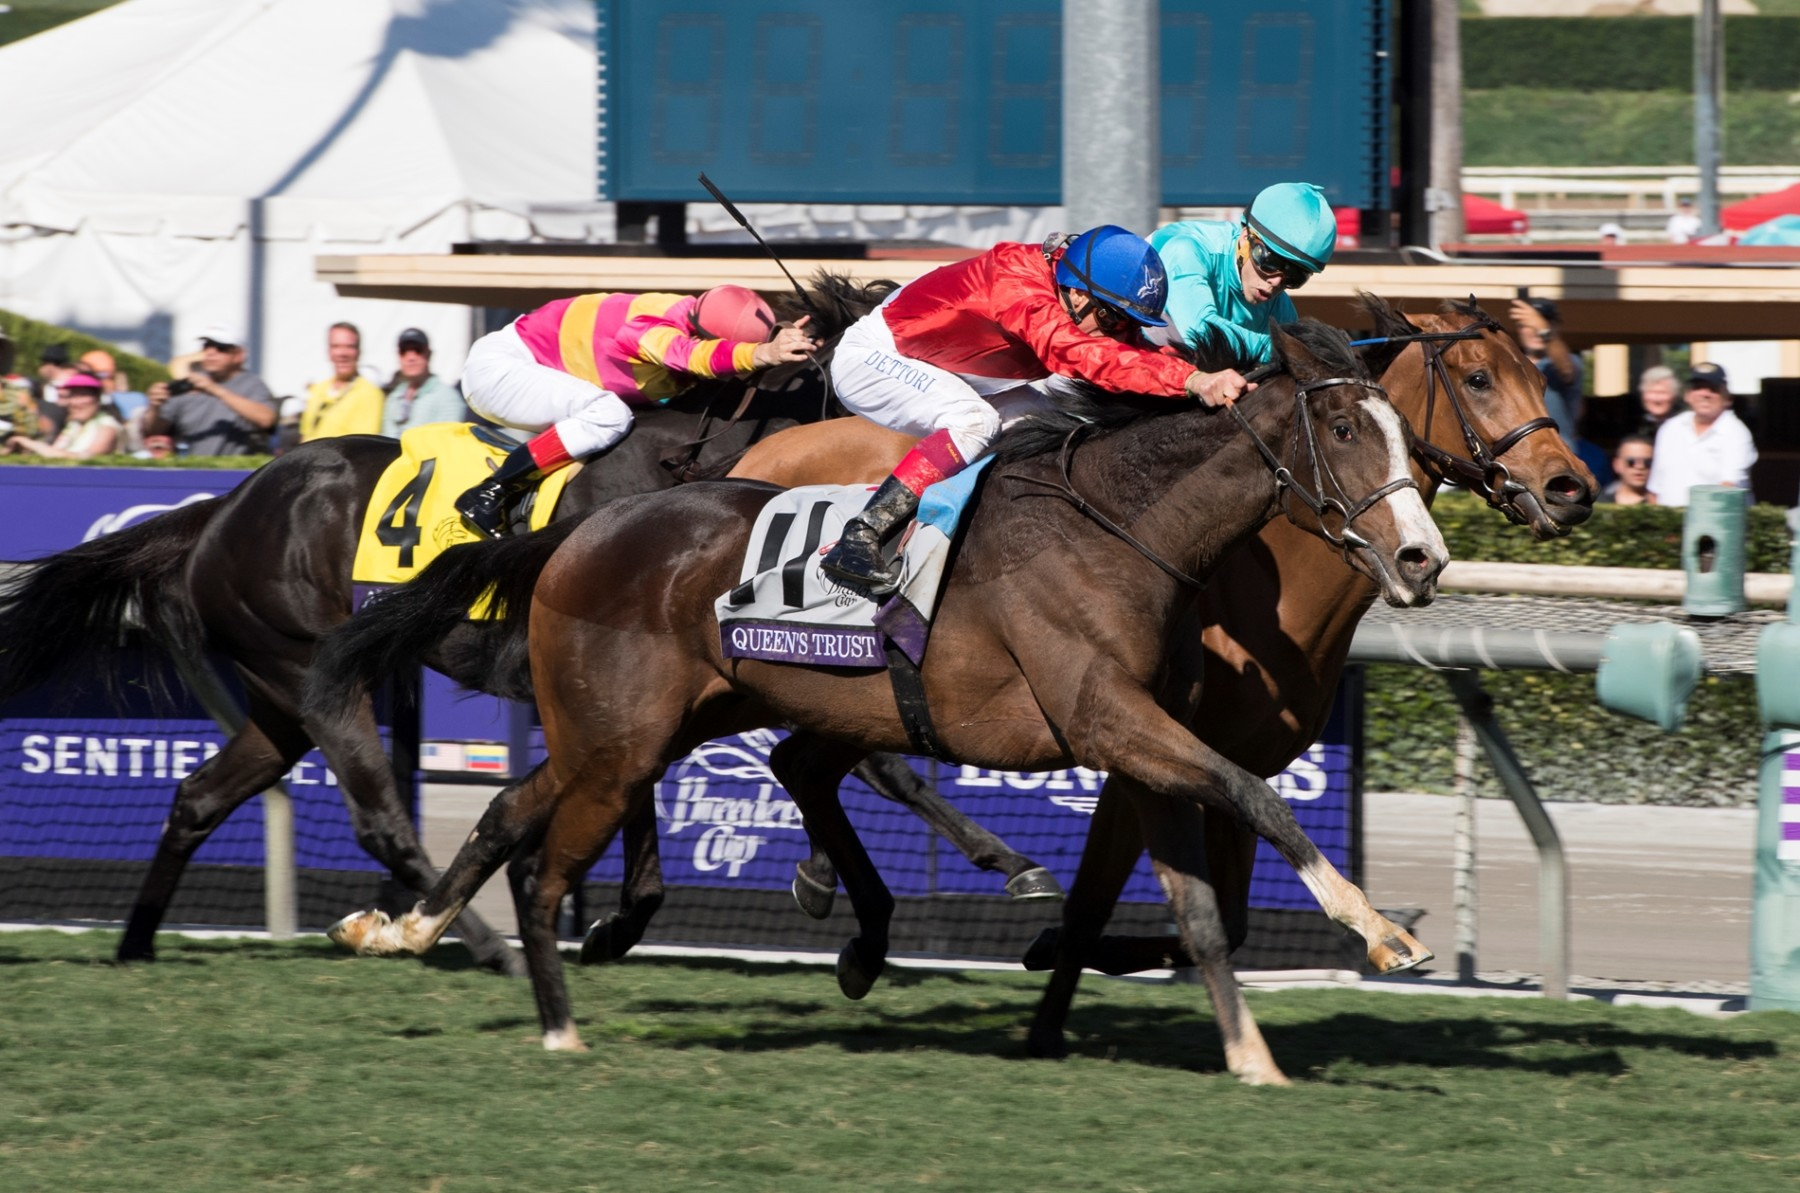 BREEDERS' CUP FILLY AND MARE TURF (GR1) - Queen's Trust enfin couronnée